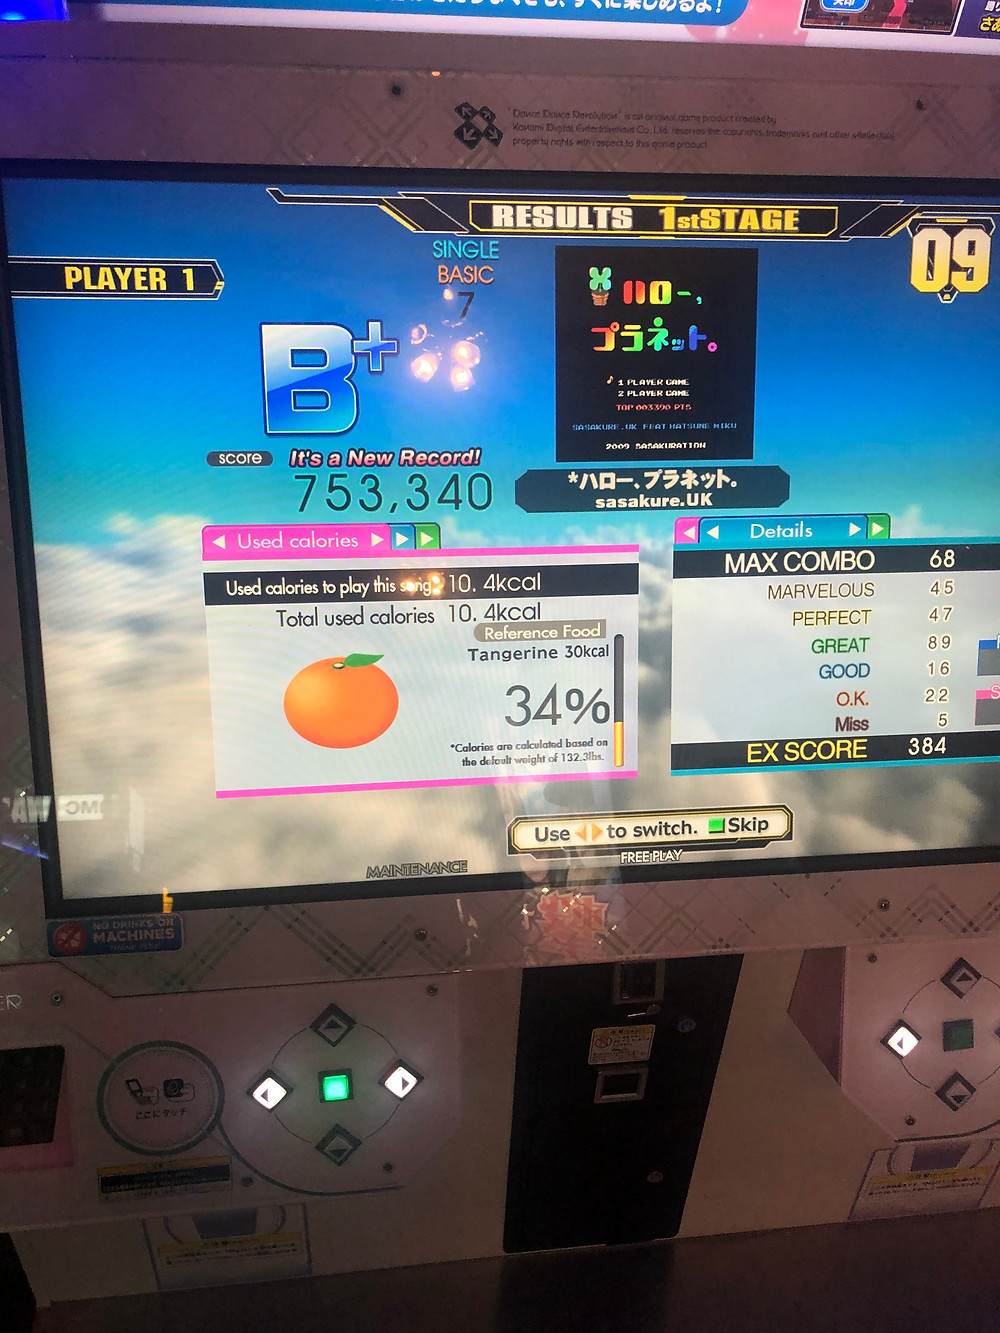 A results screen from Dance Dance Revolution of Hatsune Miku's Hello Planet